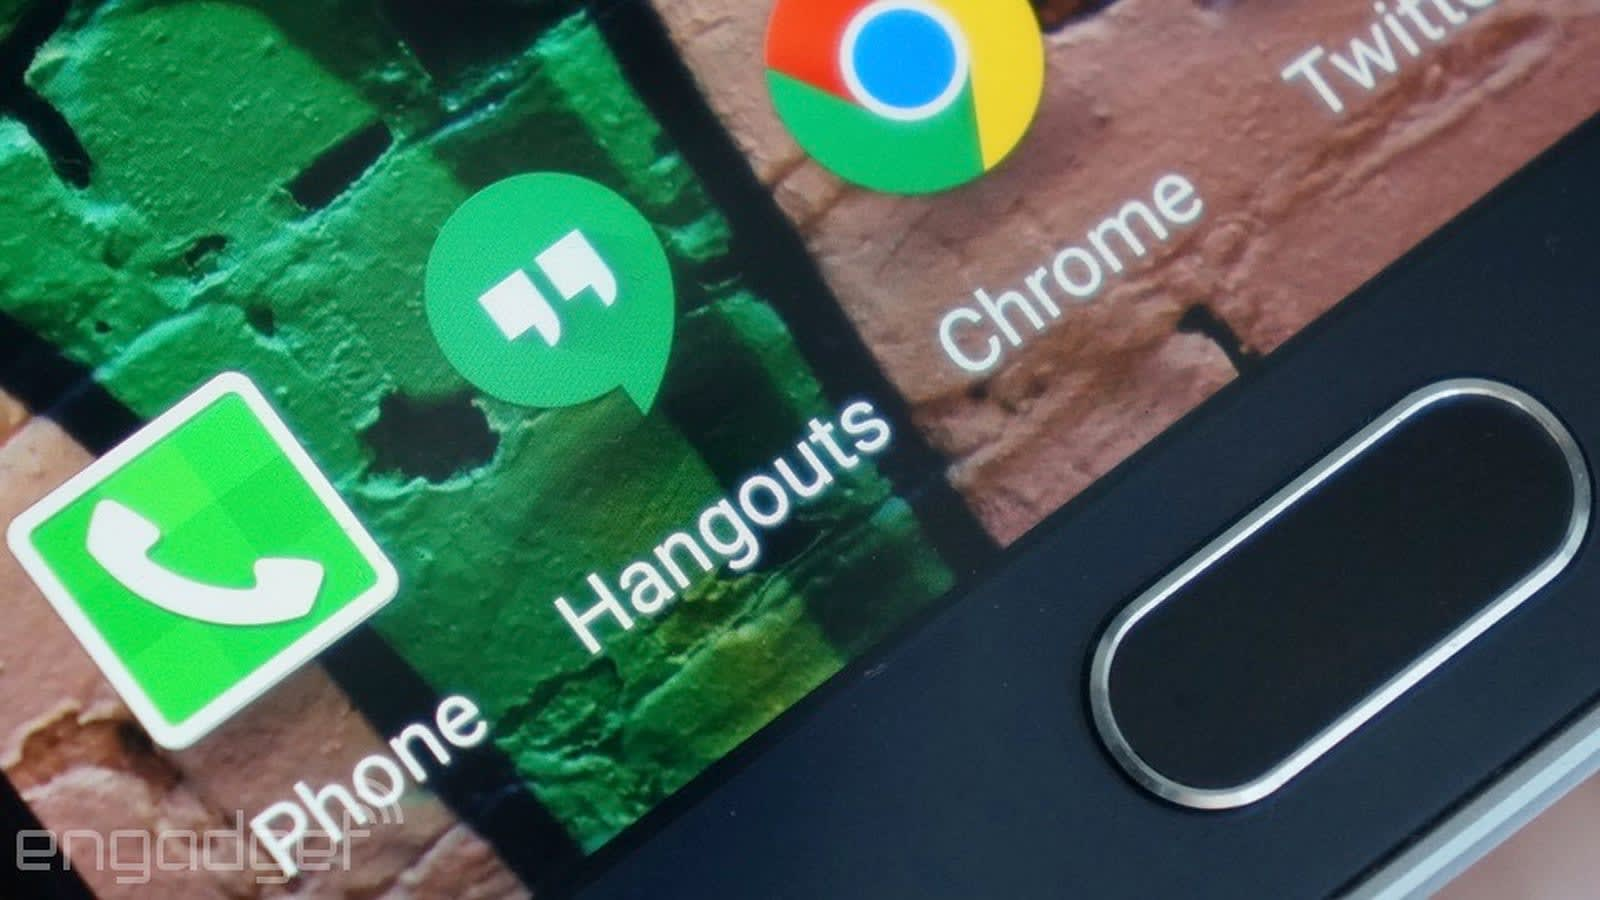 Consumer apps that rely on Google Hangouts won't work after